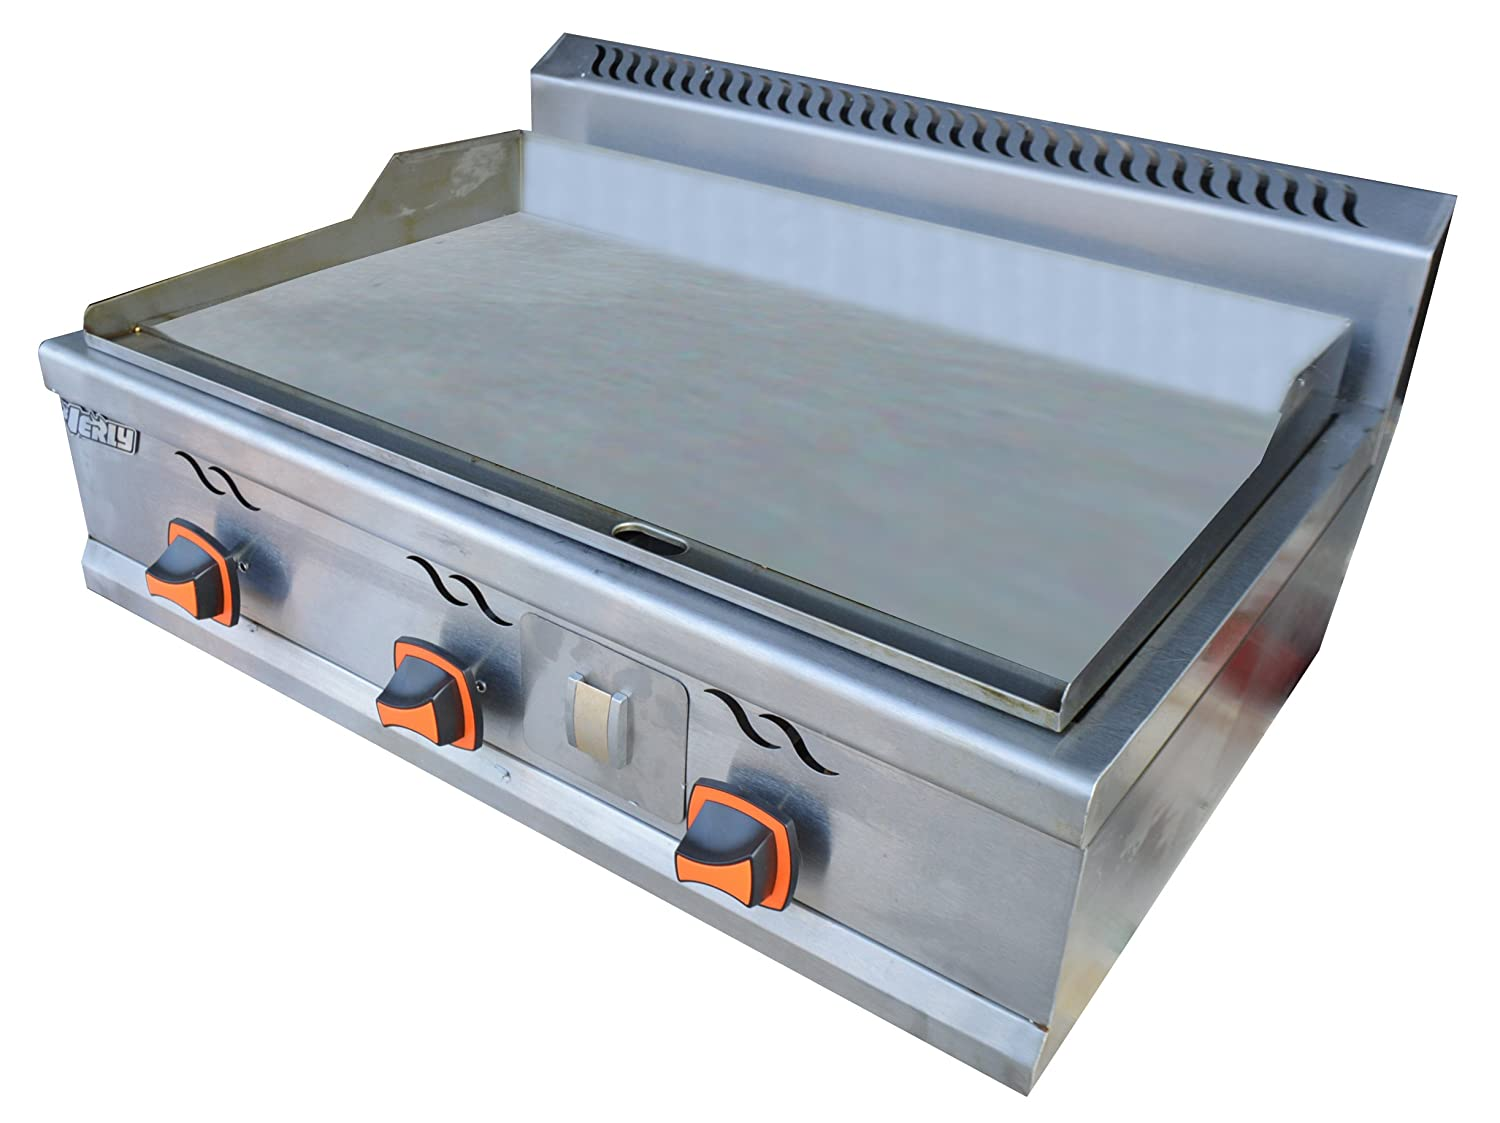 Amazon.com: Commercial Stainless Steel Kitchen Teppanyaki Natural ...